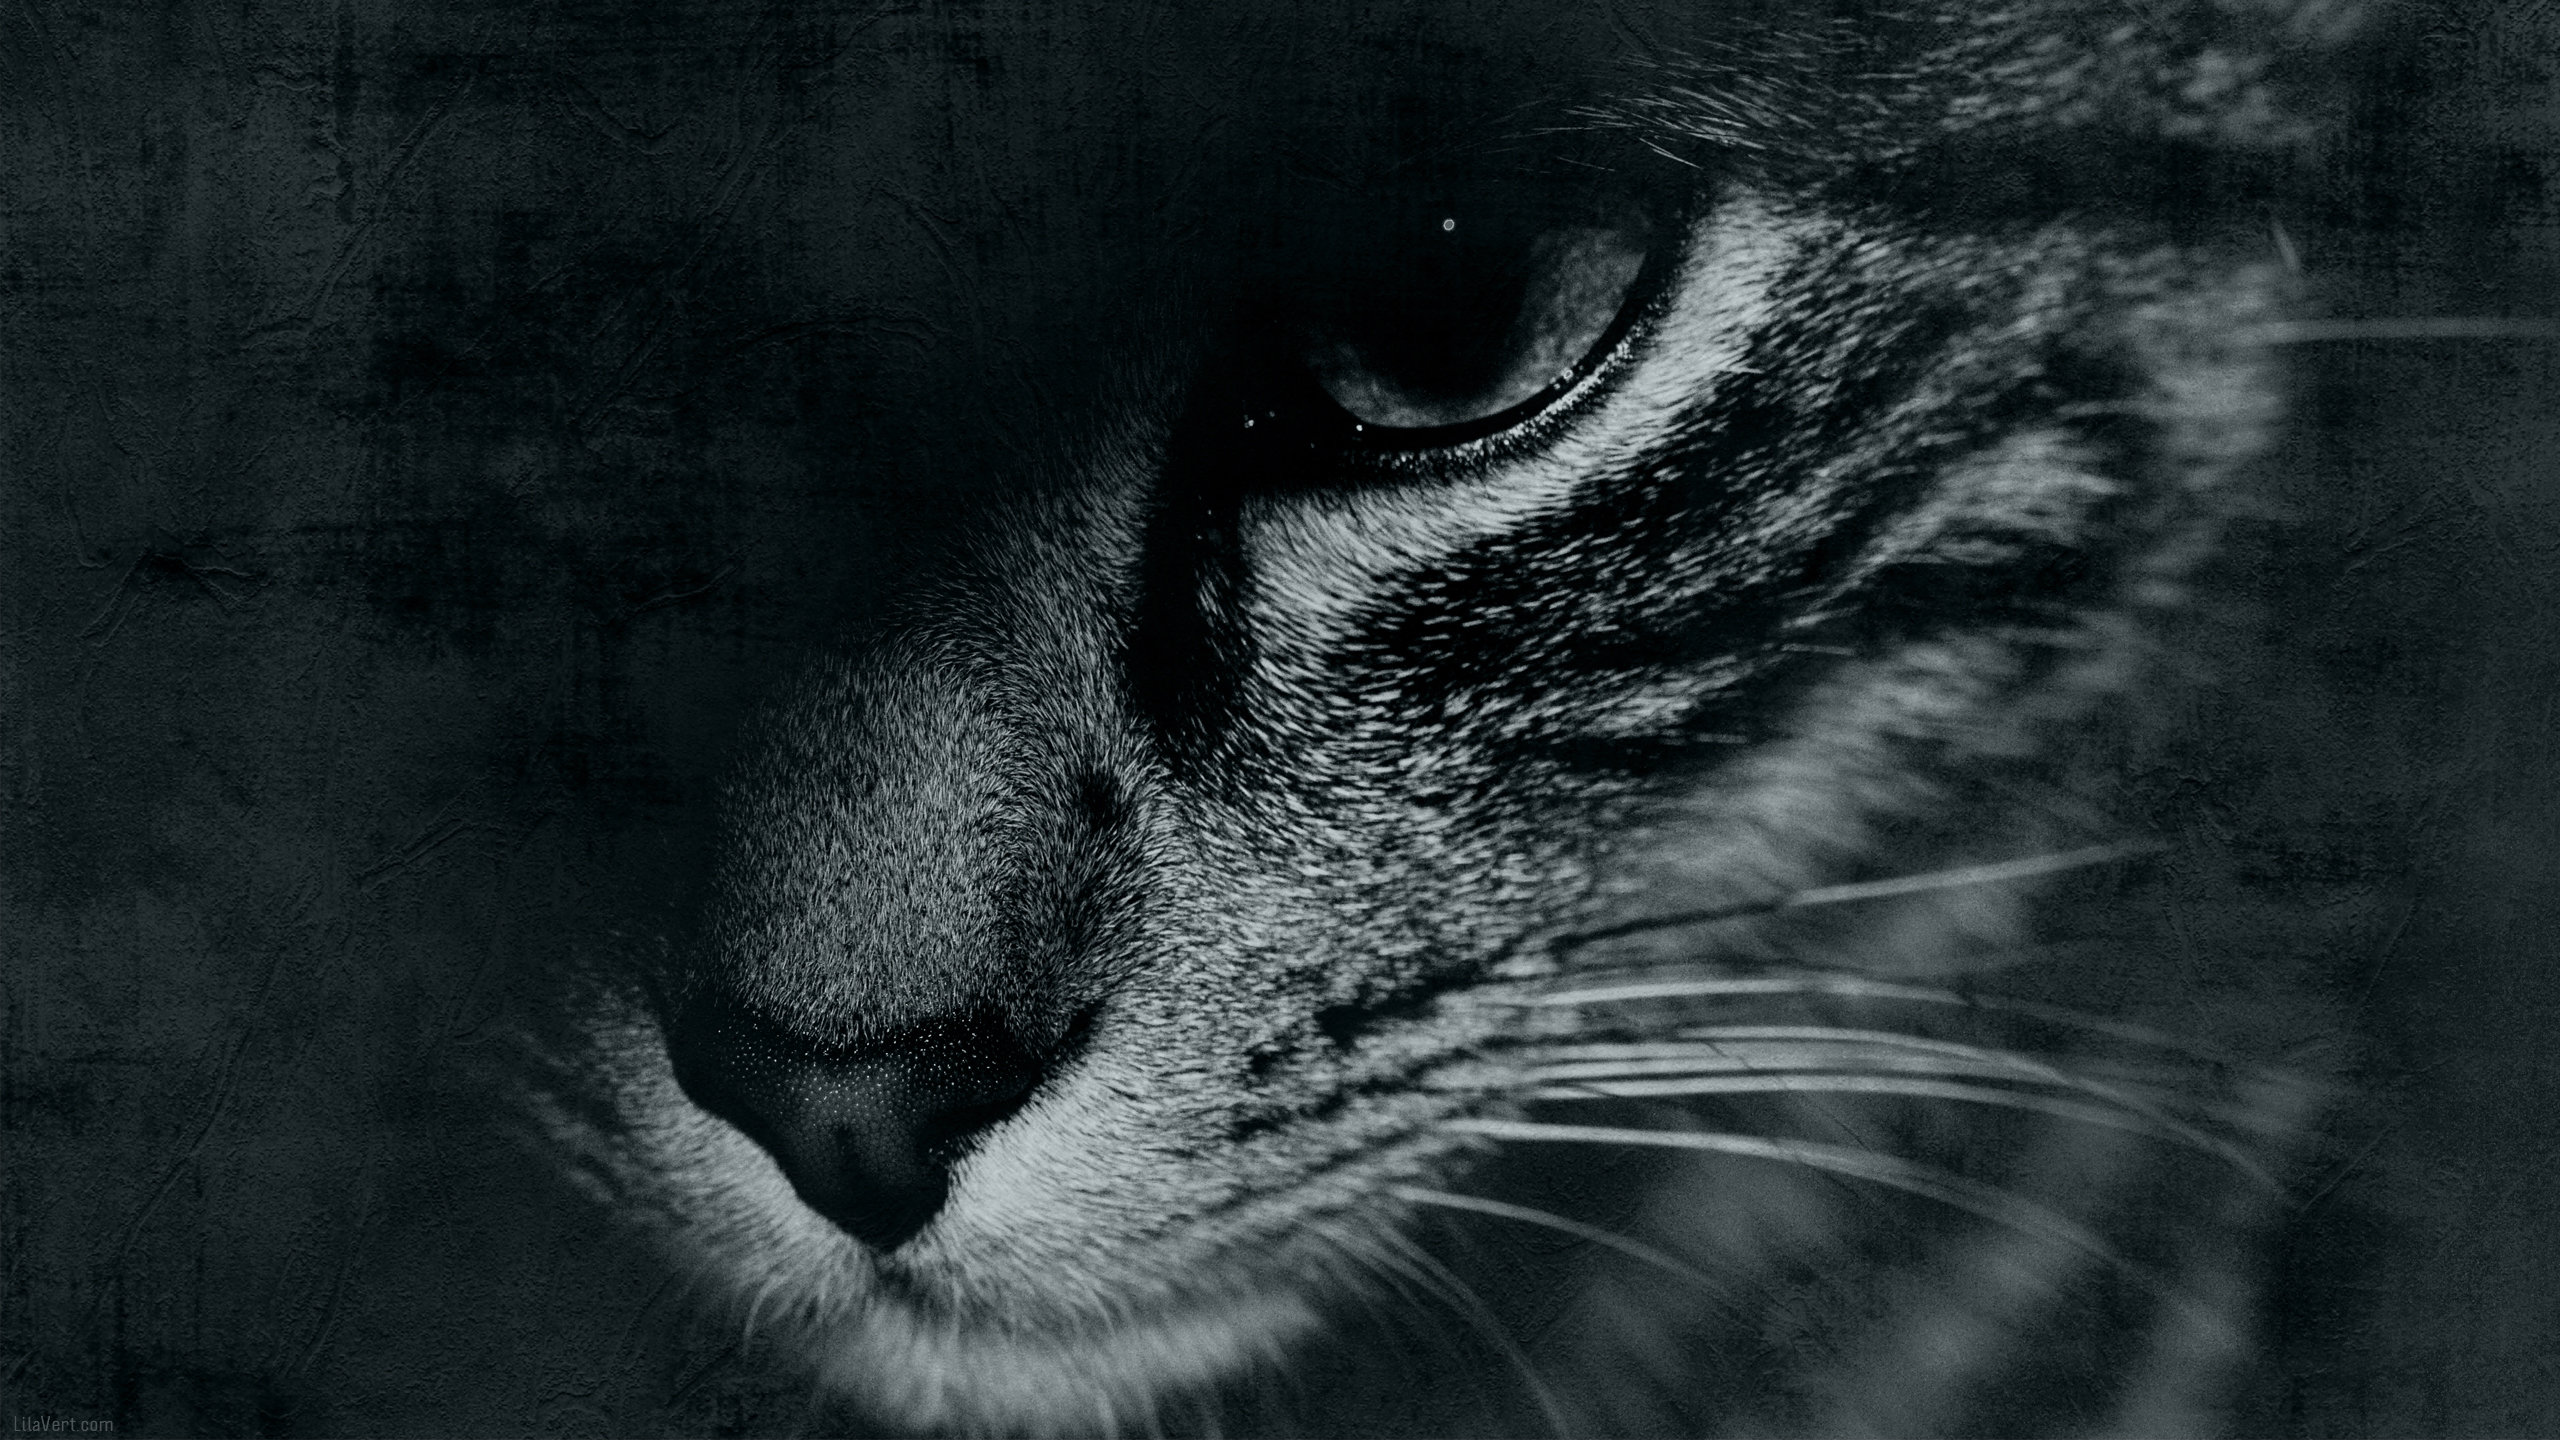 Download Hd 2560x1440 Cat PC Wallpaper ID427243 For Free